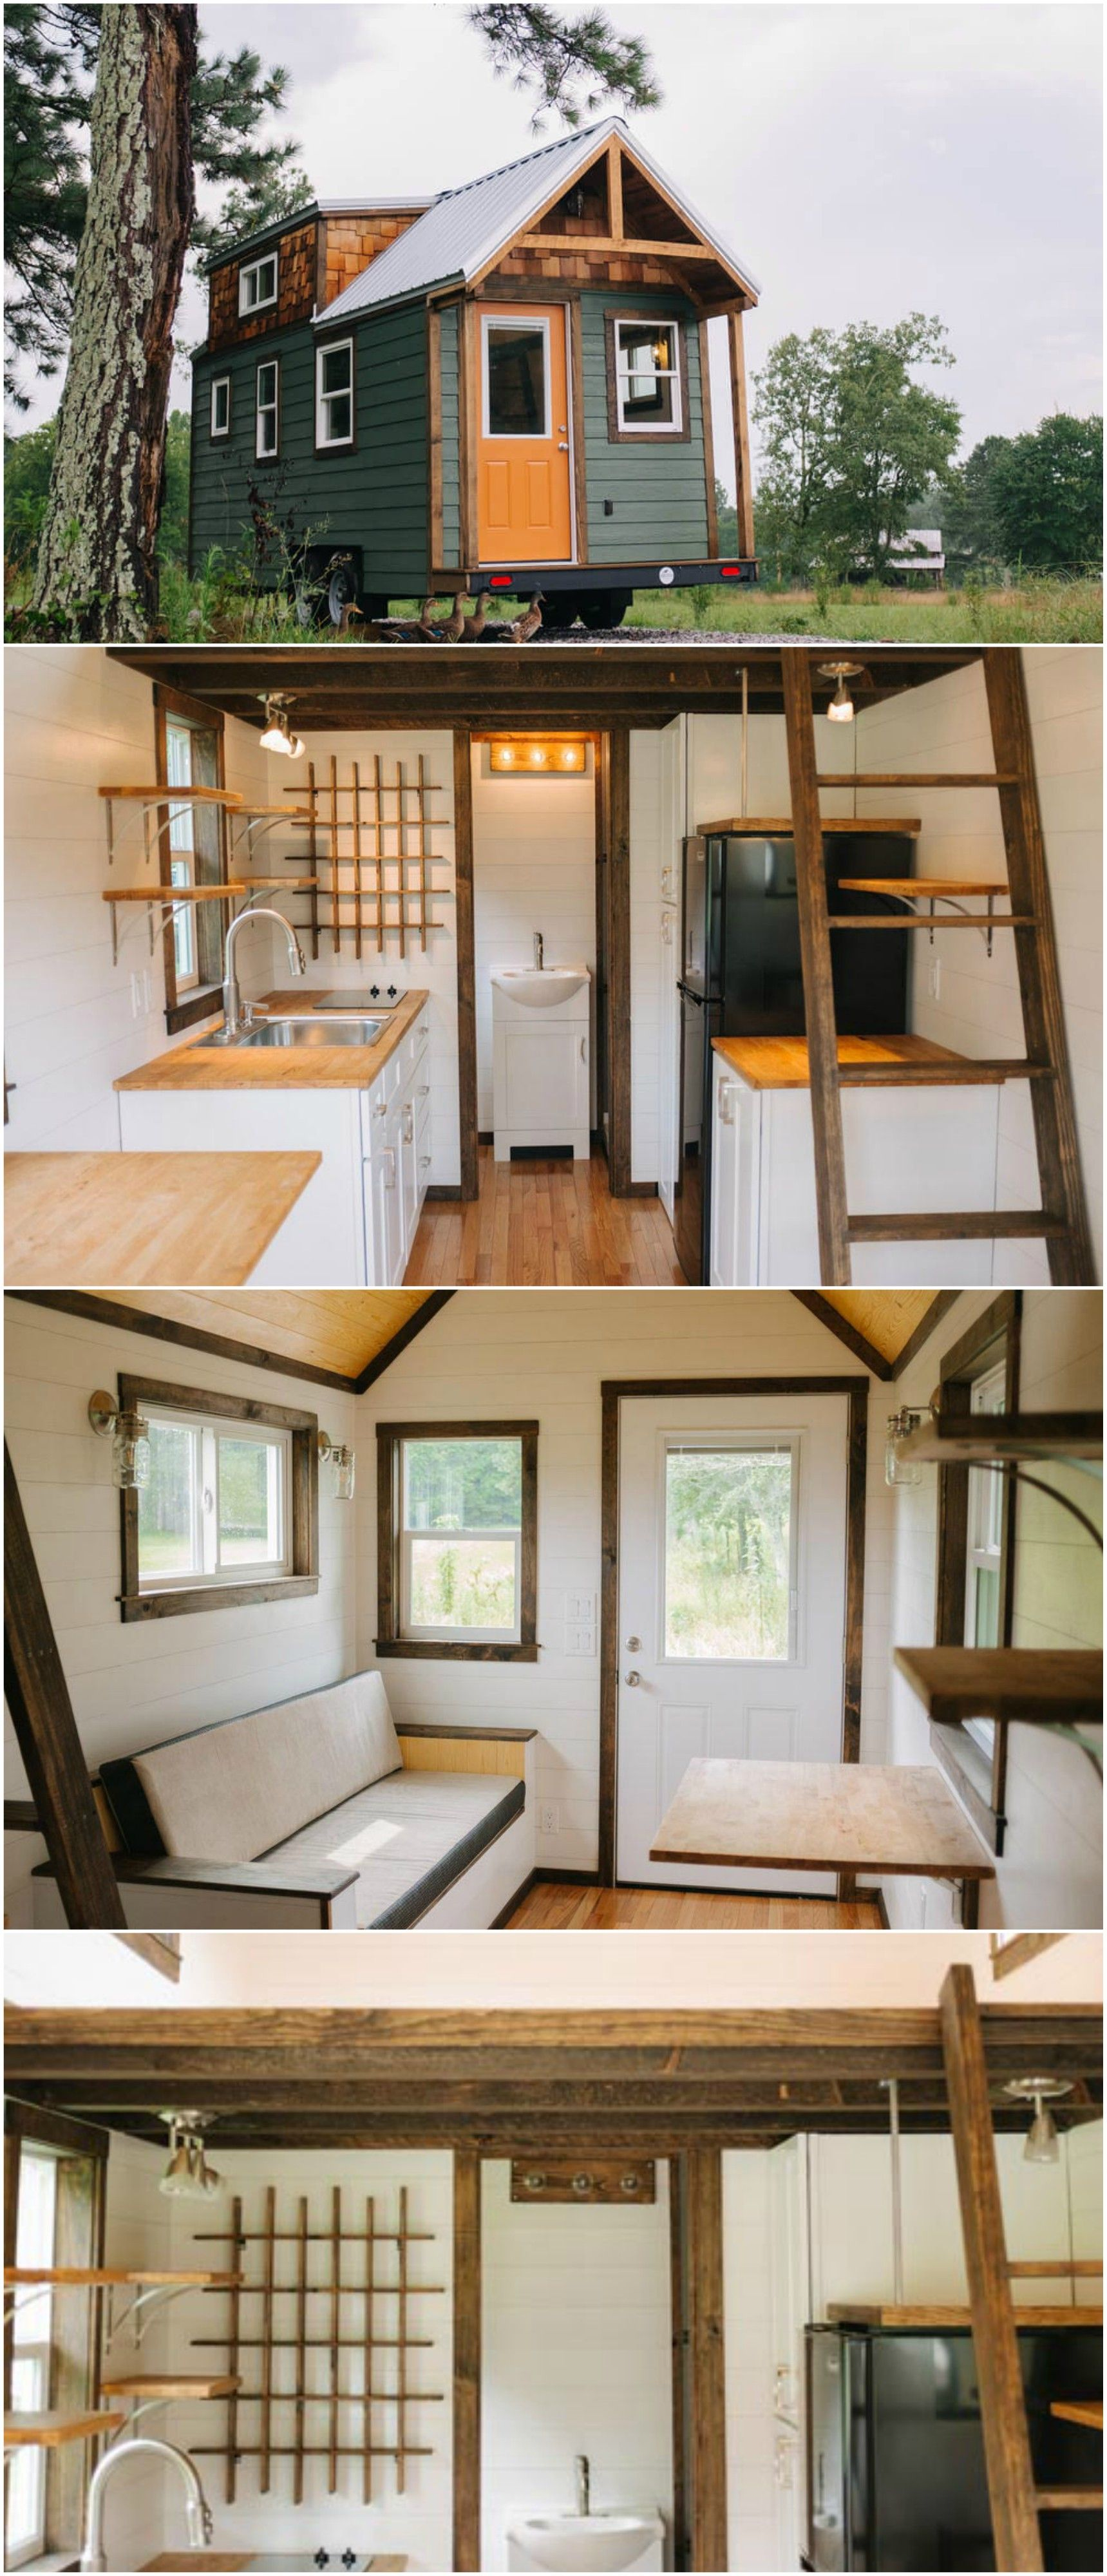 The Acadia is an amazing tiny house